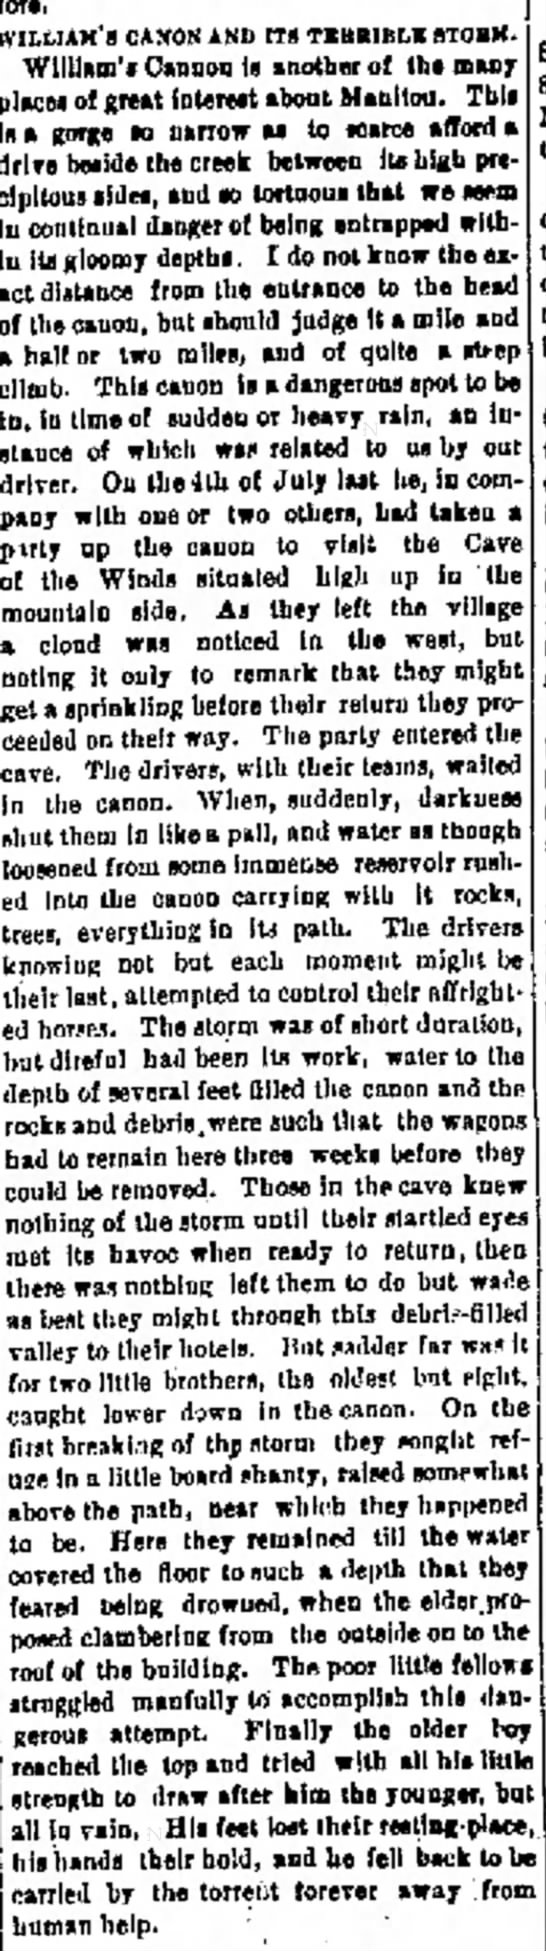 William's Cannon a place in Rhode Island - ai If a themselves, to of It with aud public in...